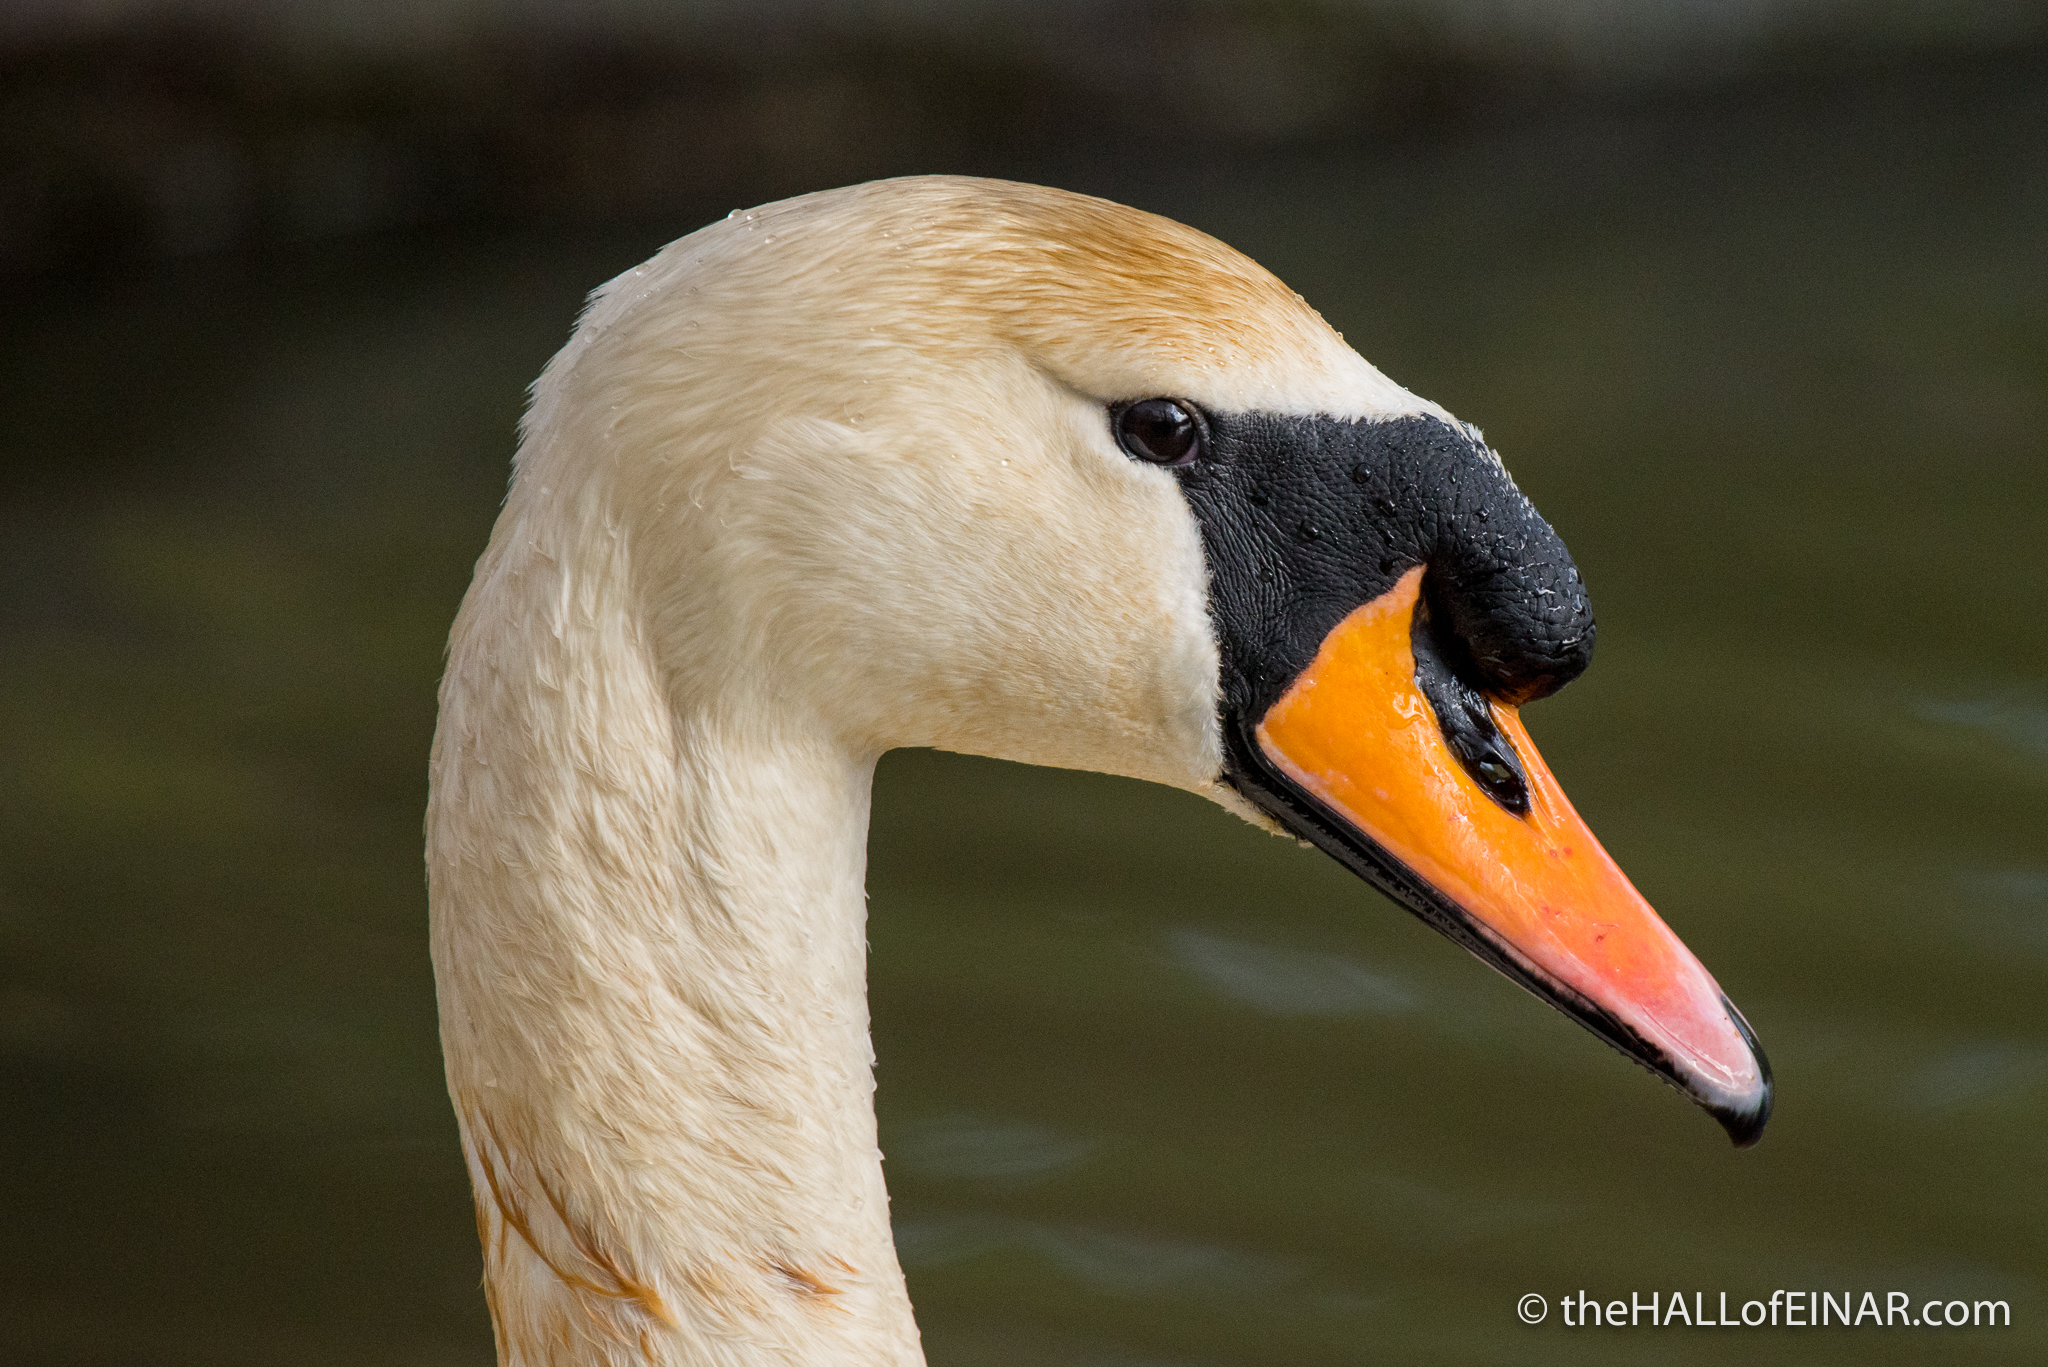 Mute Swan - Stover - The Hall of Einar - photograph (c) David Bailey (not the)